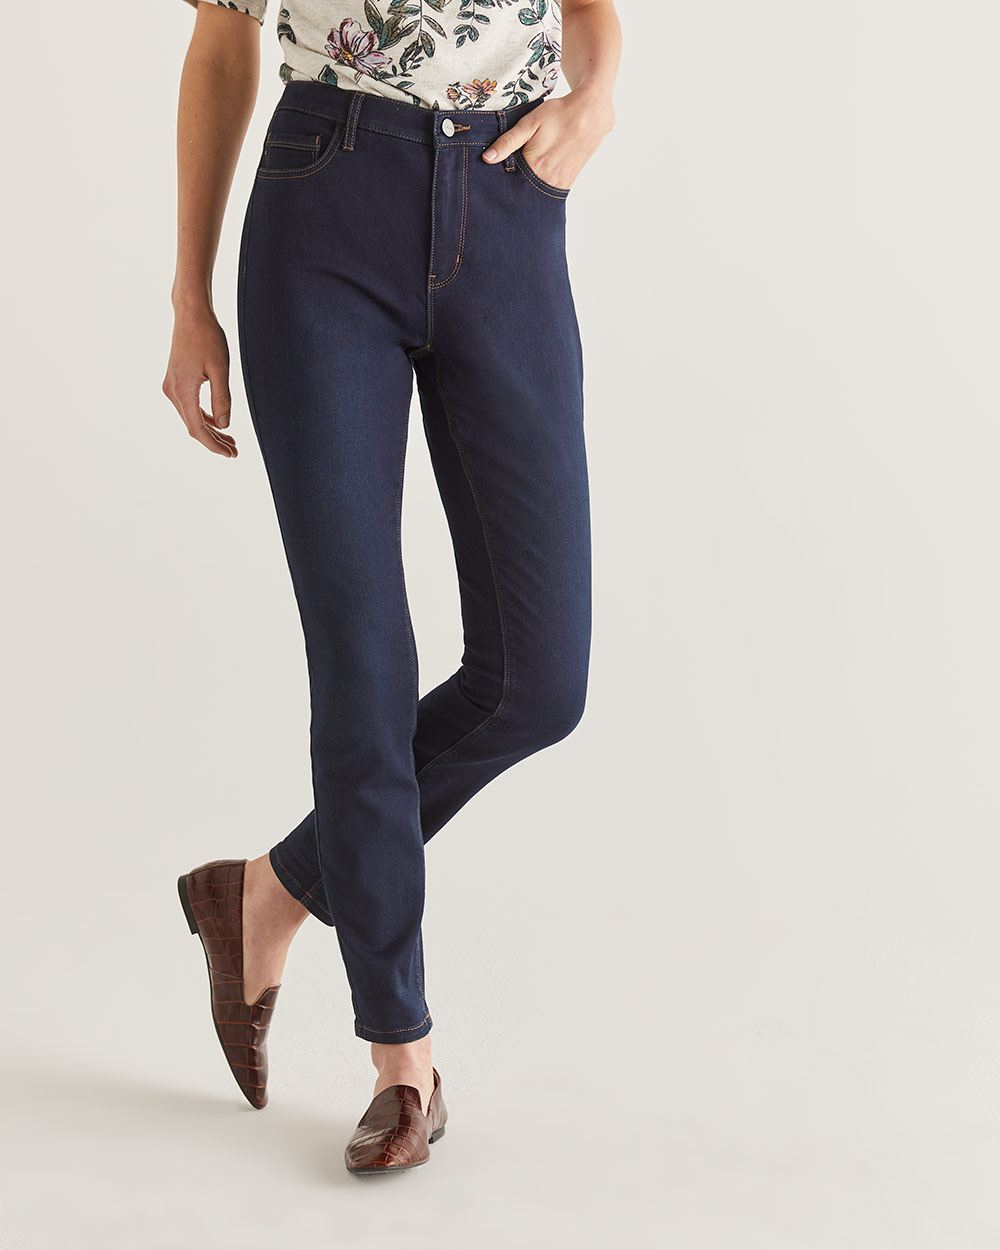 The Tall Signature Soft High Rise Skinny Jeans